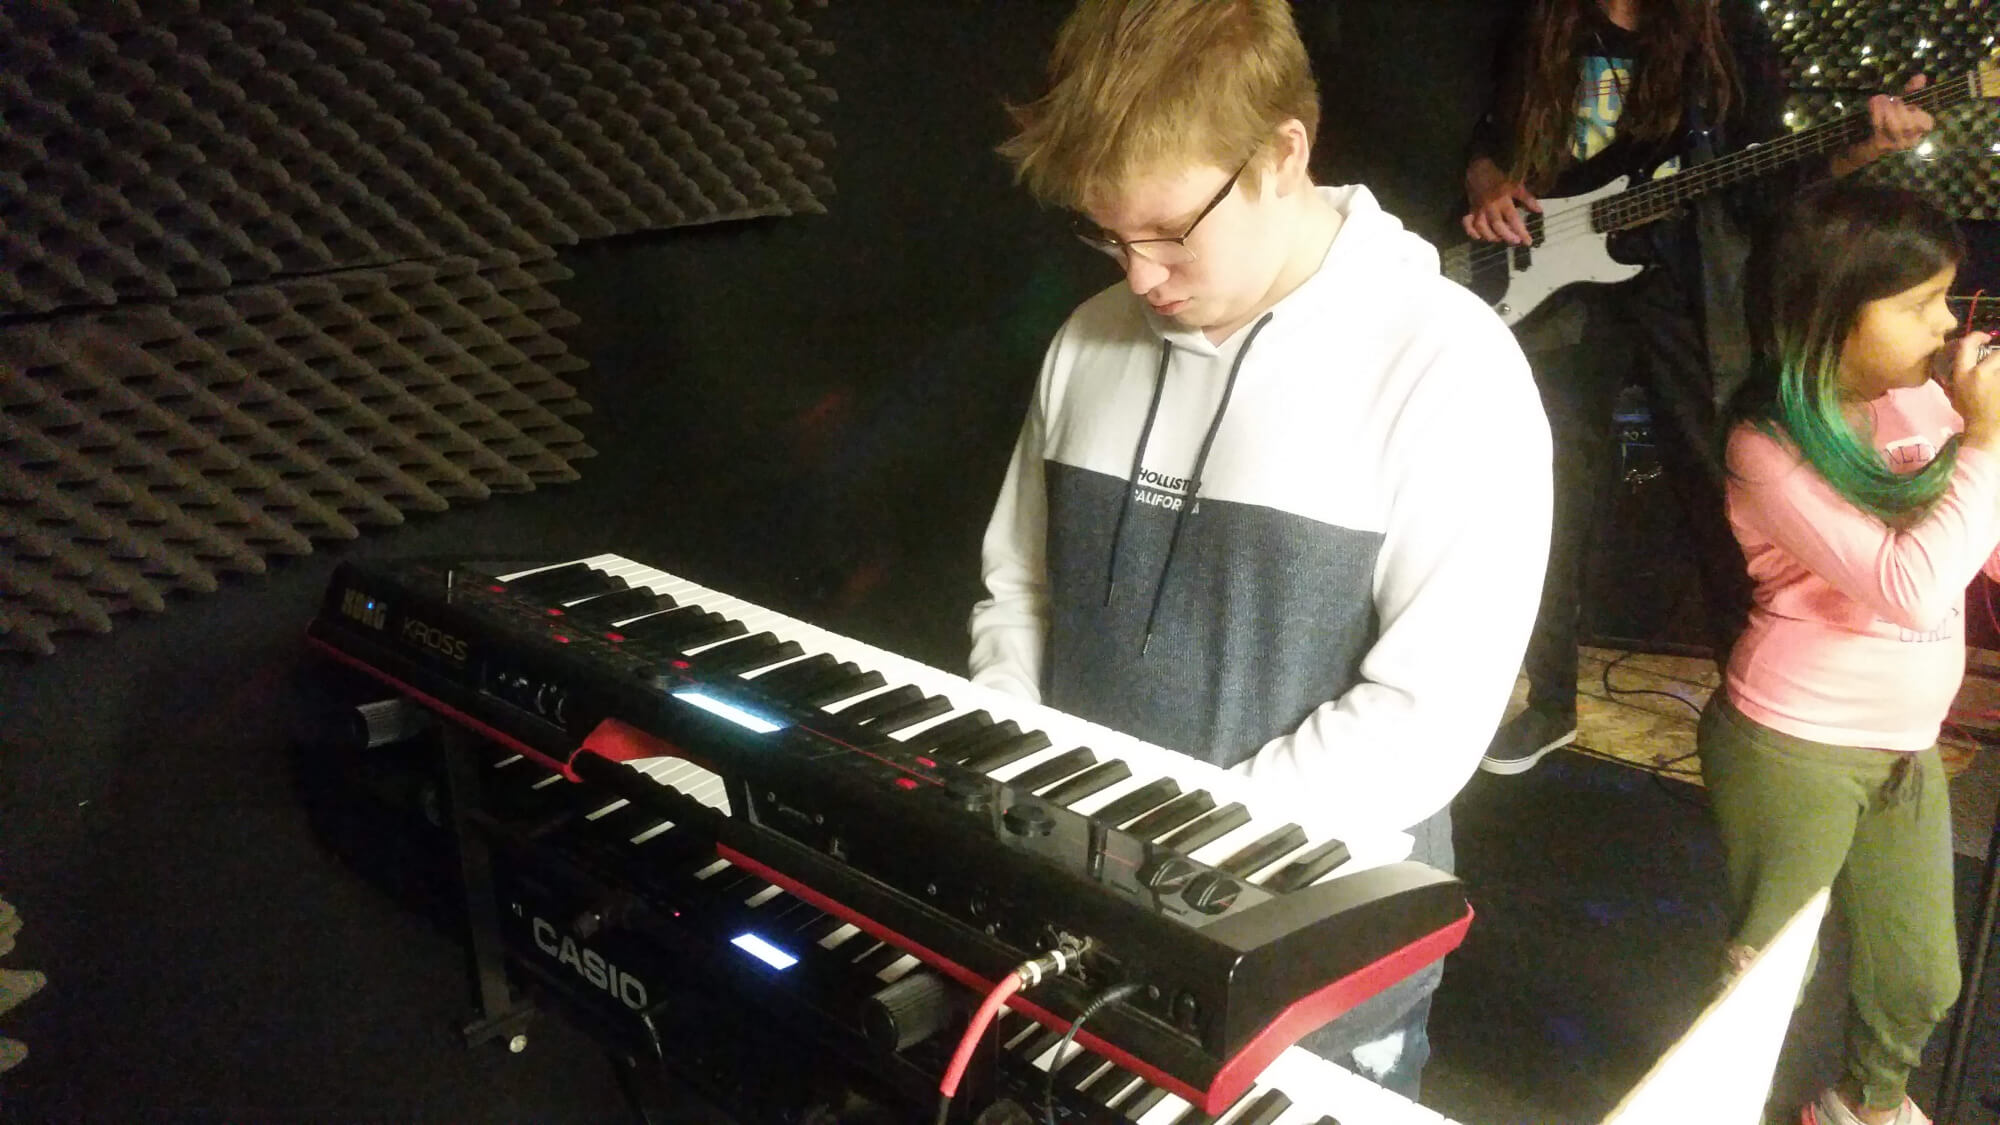 One of our students mastering the keys during rehearsal.